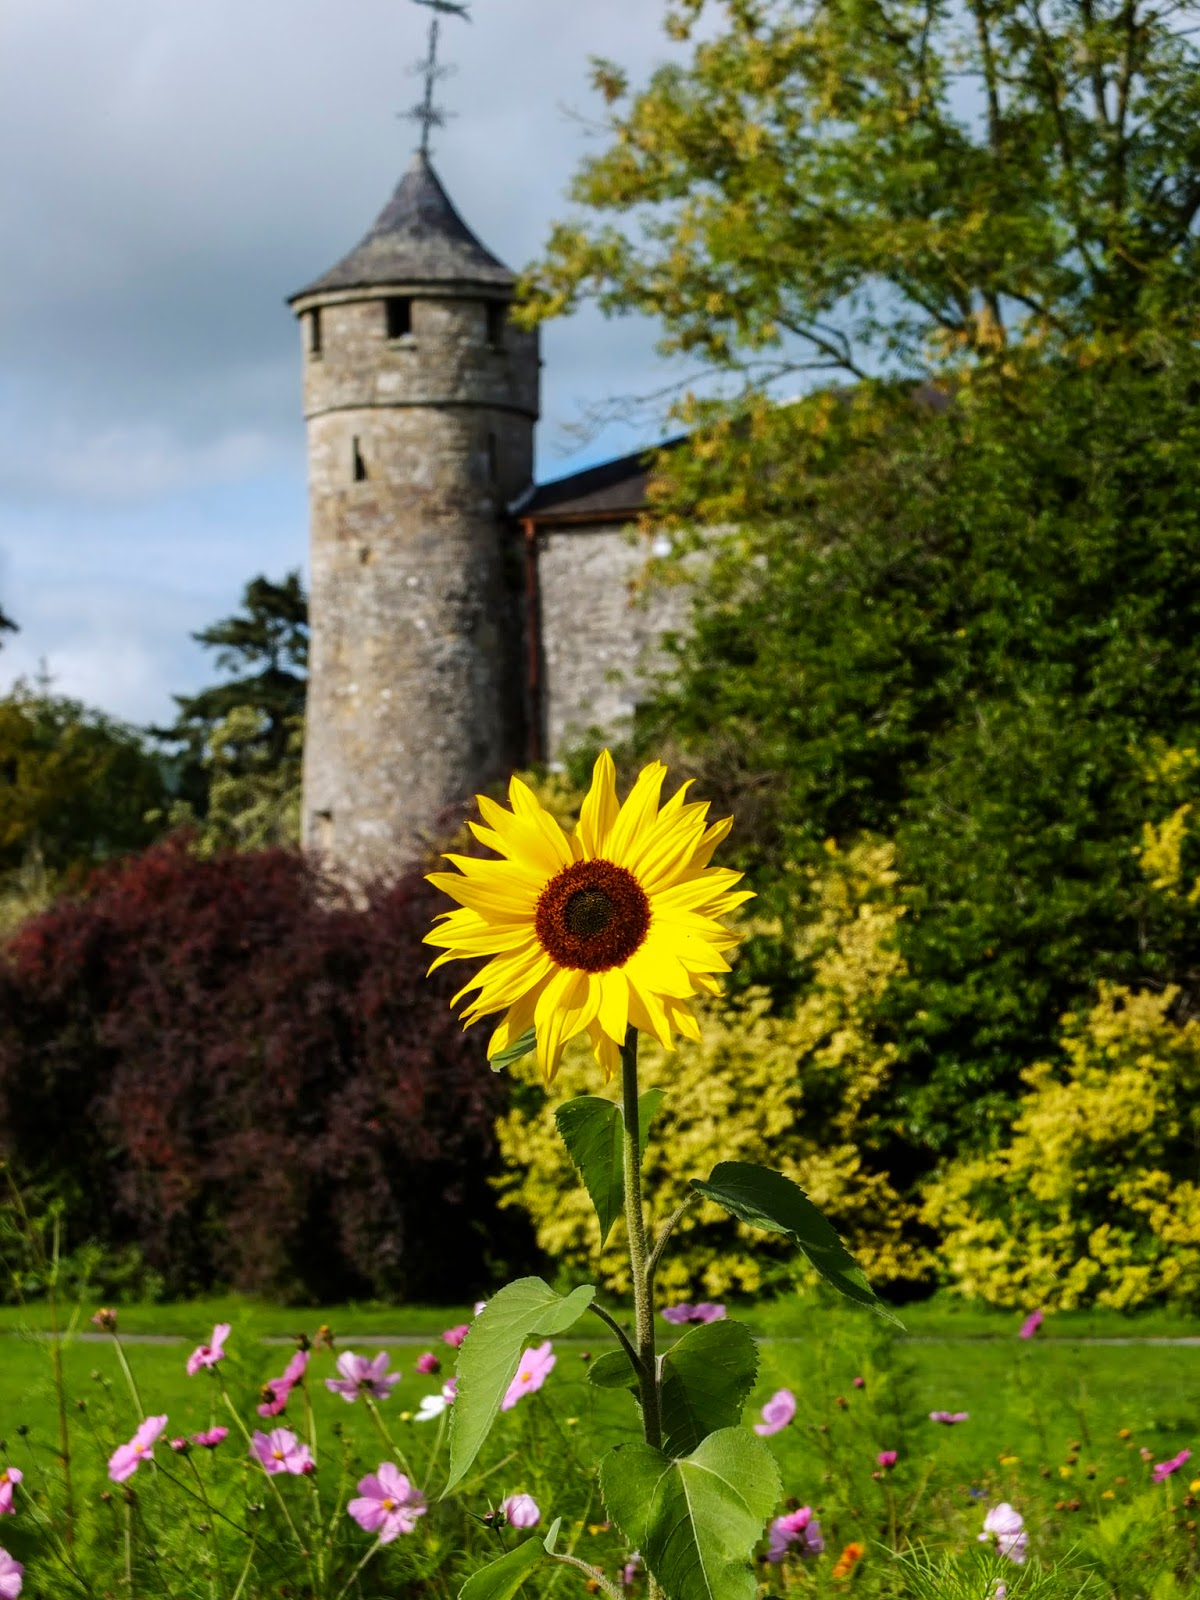 A round corner tower with a sunflower in front of it at Cahir Castle.